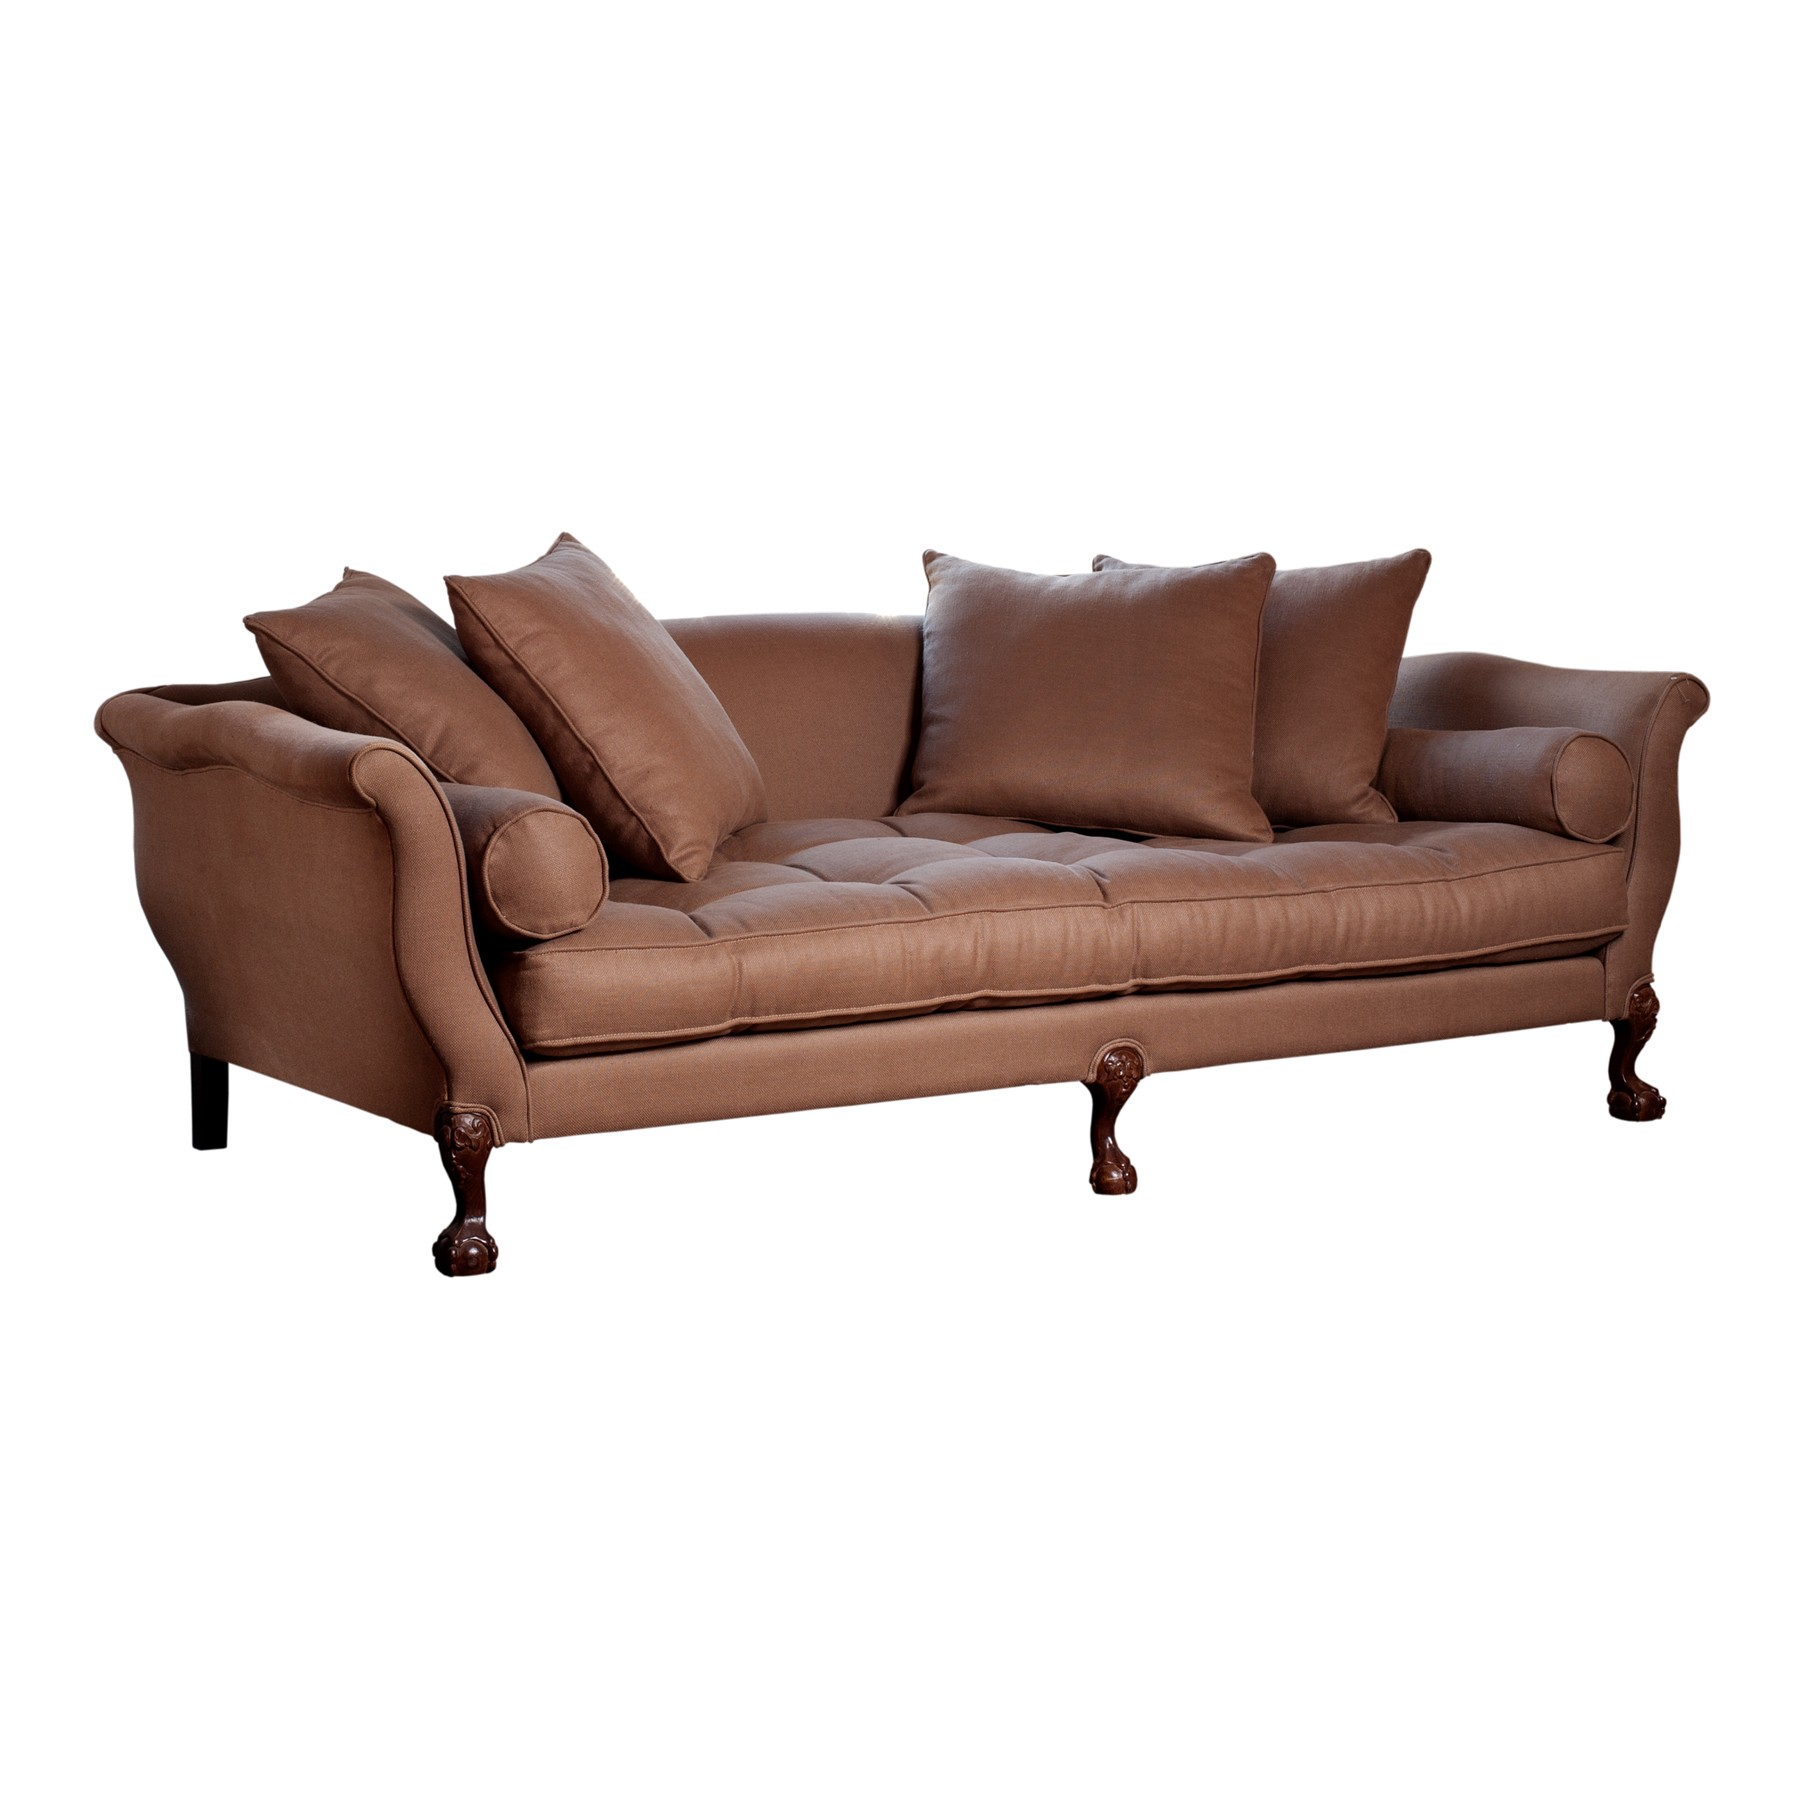 Sectional sofa new orleans hereo sofa for Sectional sofas new orleans